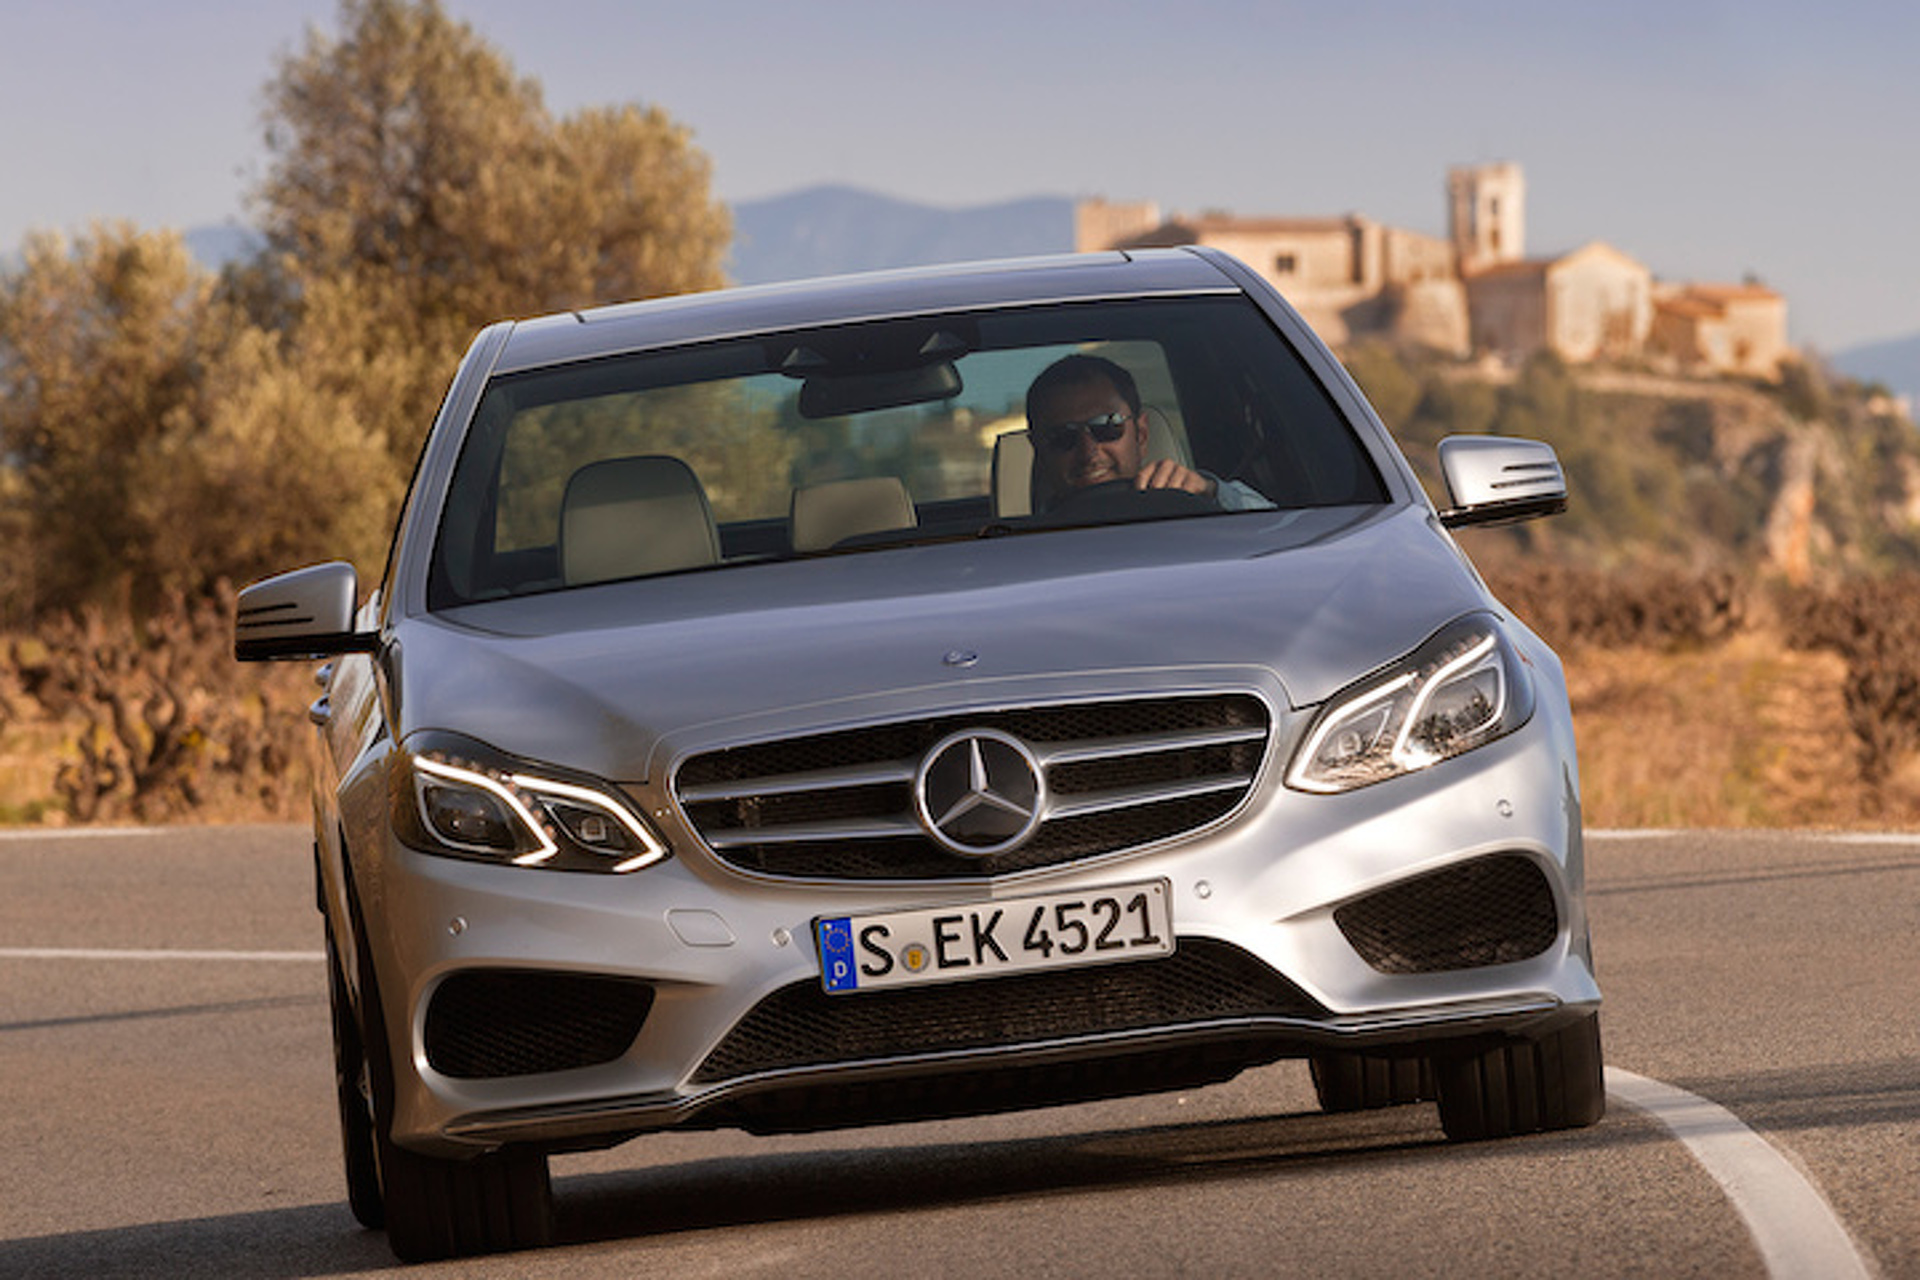 b269be70e6 Unfaithful Spouses More Likely to Drive German Cars